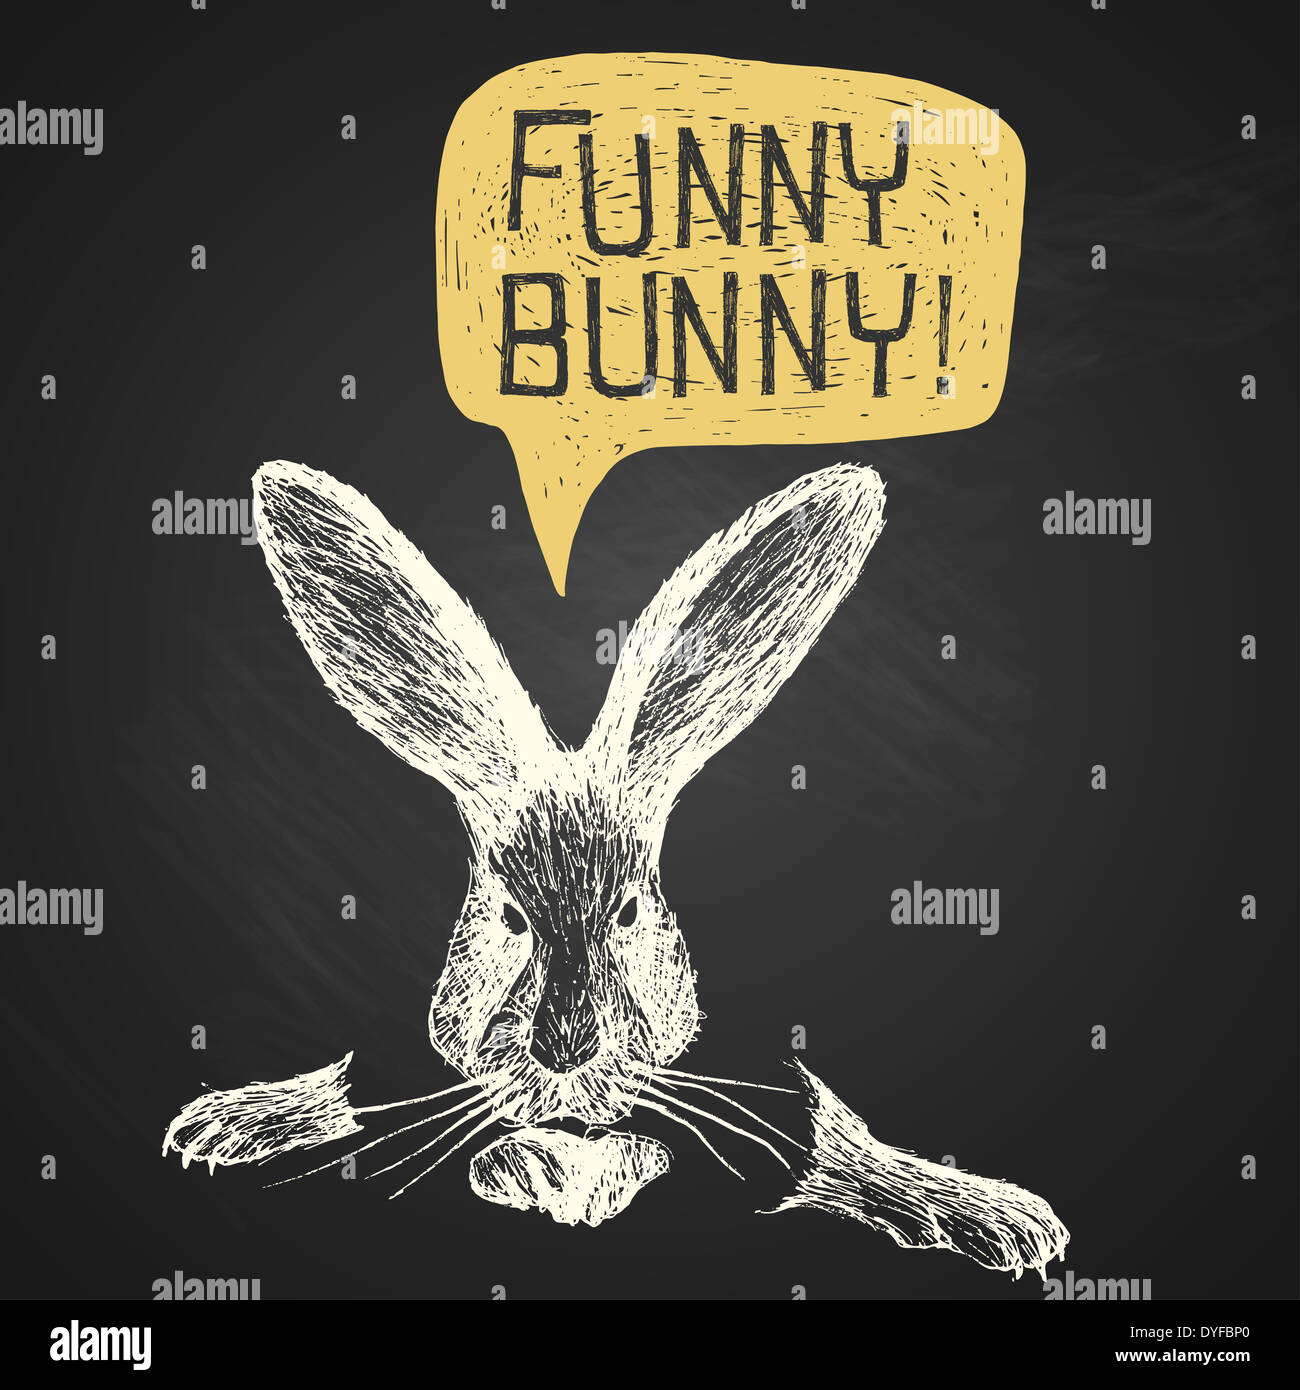 Easter Hand Drawn Funny Bunny With Humorous Phrase On Chalkboard